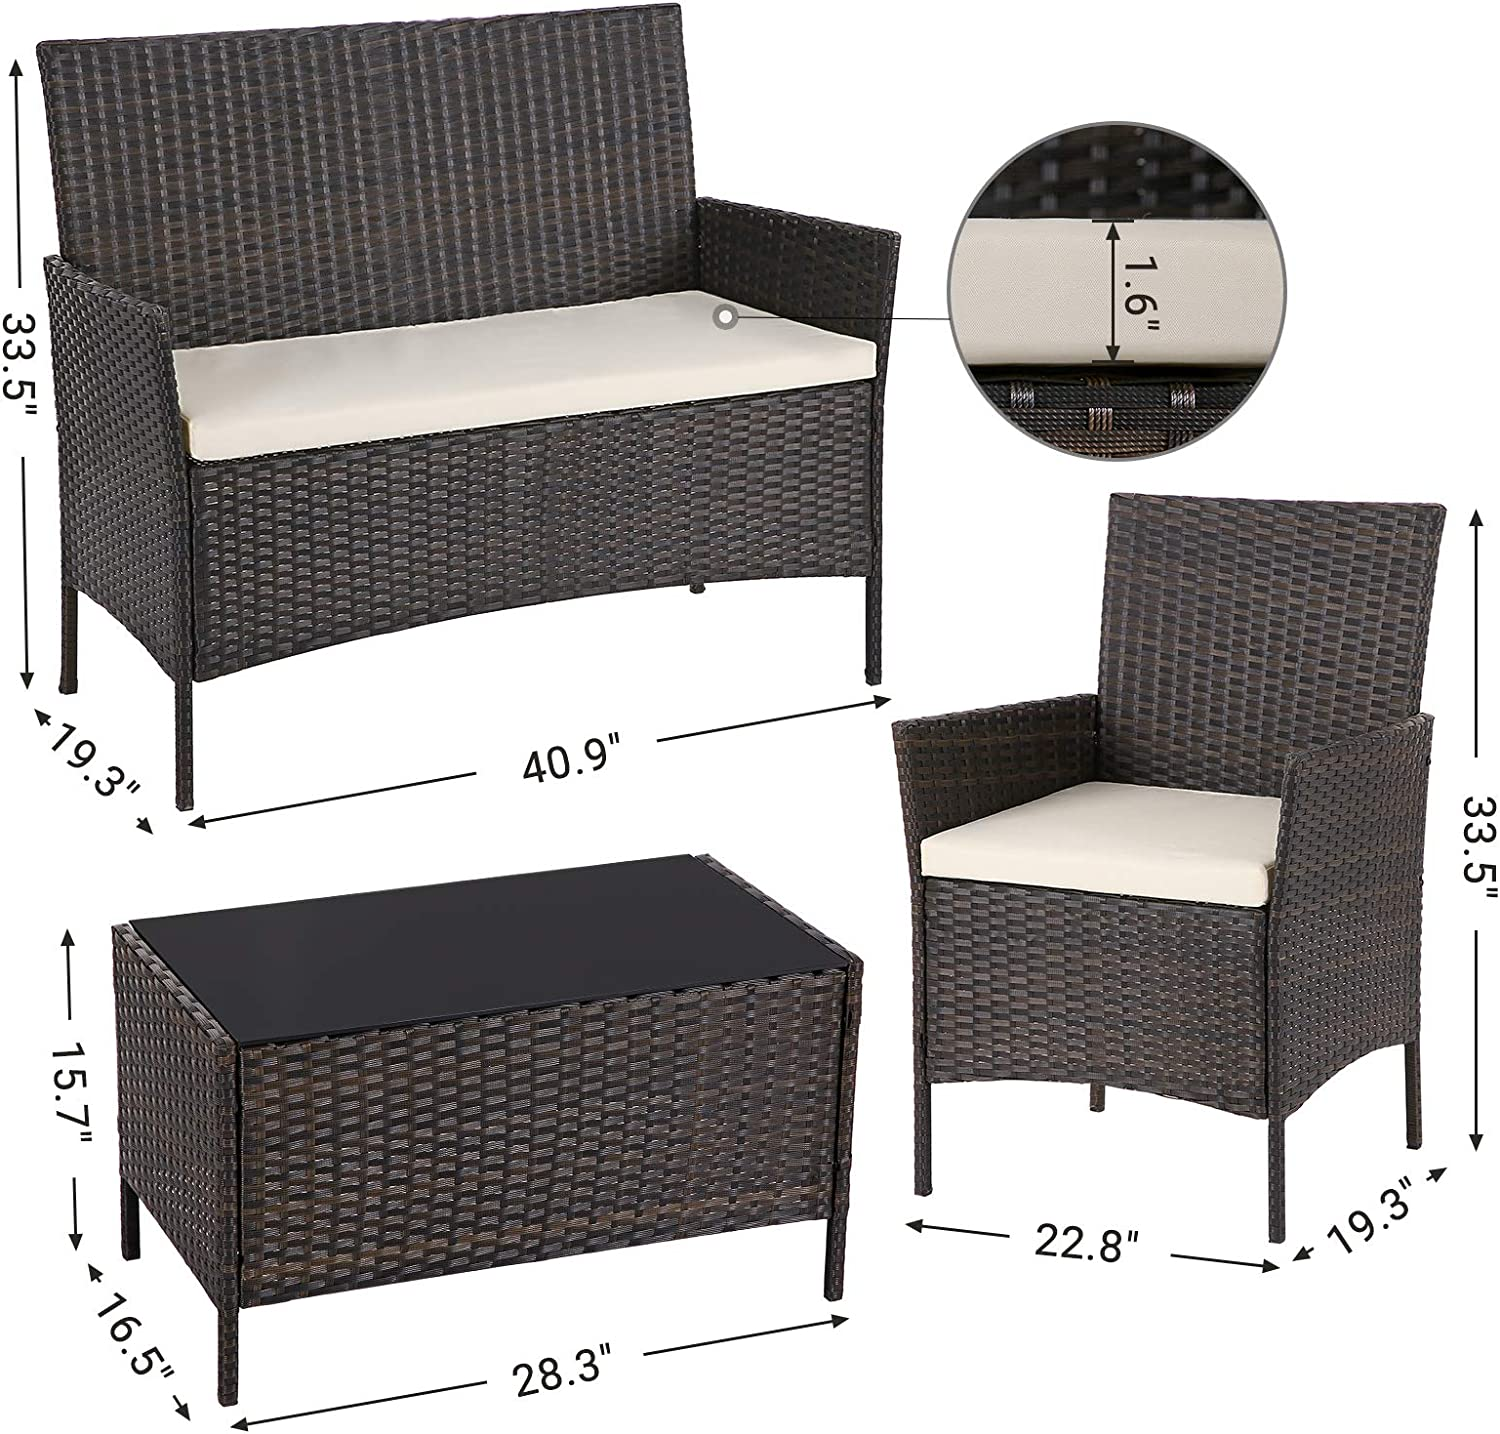 SONGMICS Set of 4 Polyrattan Garden Furniture 1 Coffee Table with Tempered Glass Top Brown and Beige UGGF002BR1 3 Removable Covers Patio Furniture Set with 2 Chairs 1 Sofa